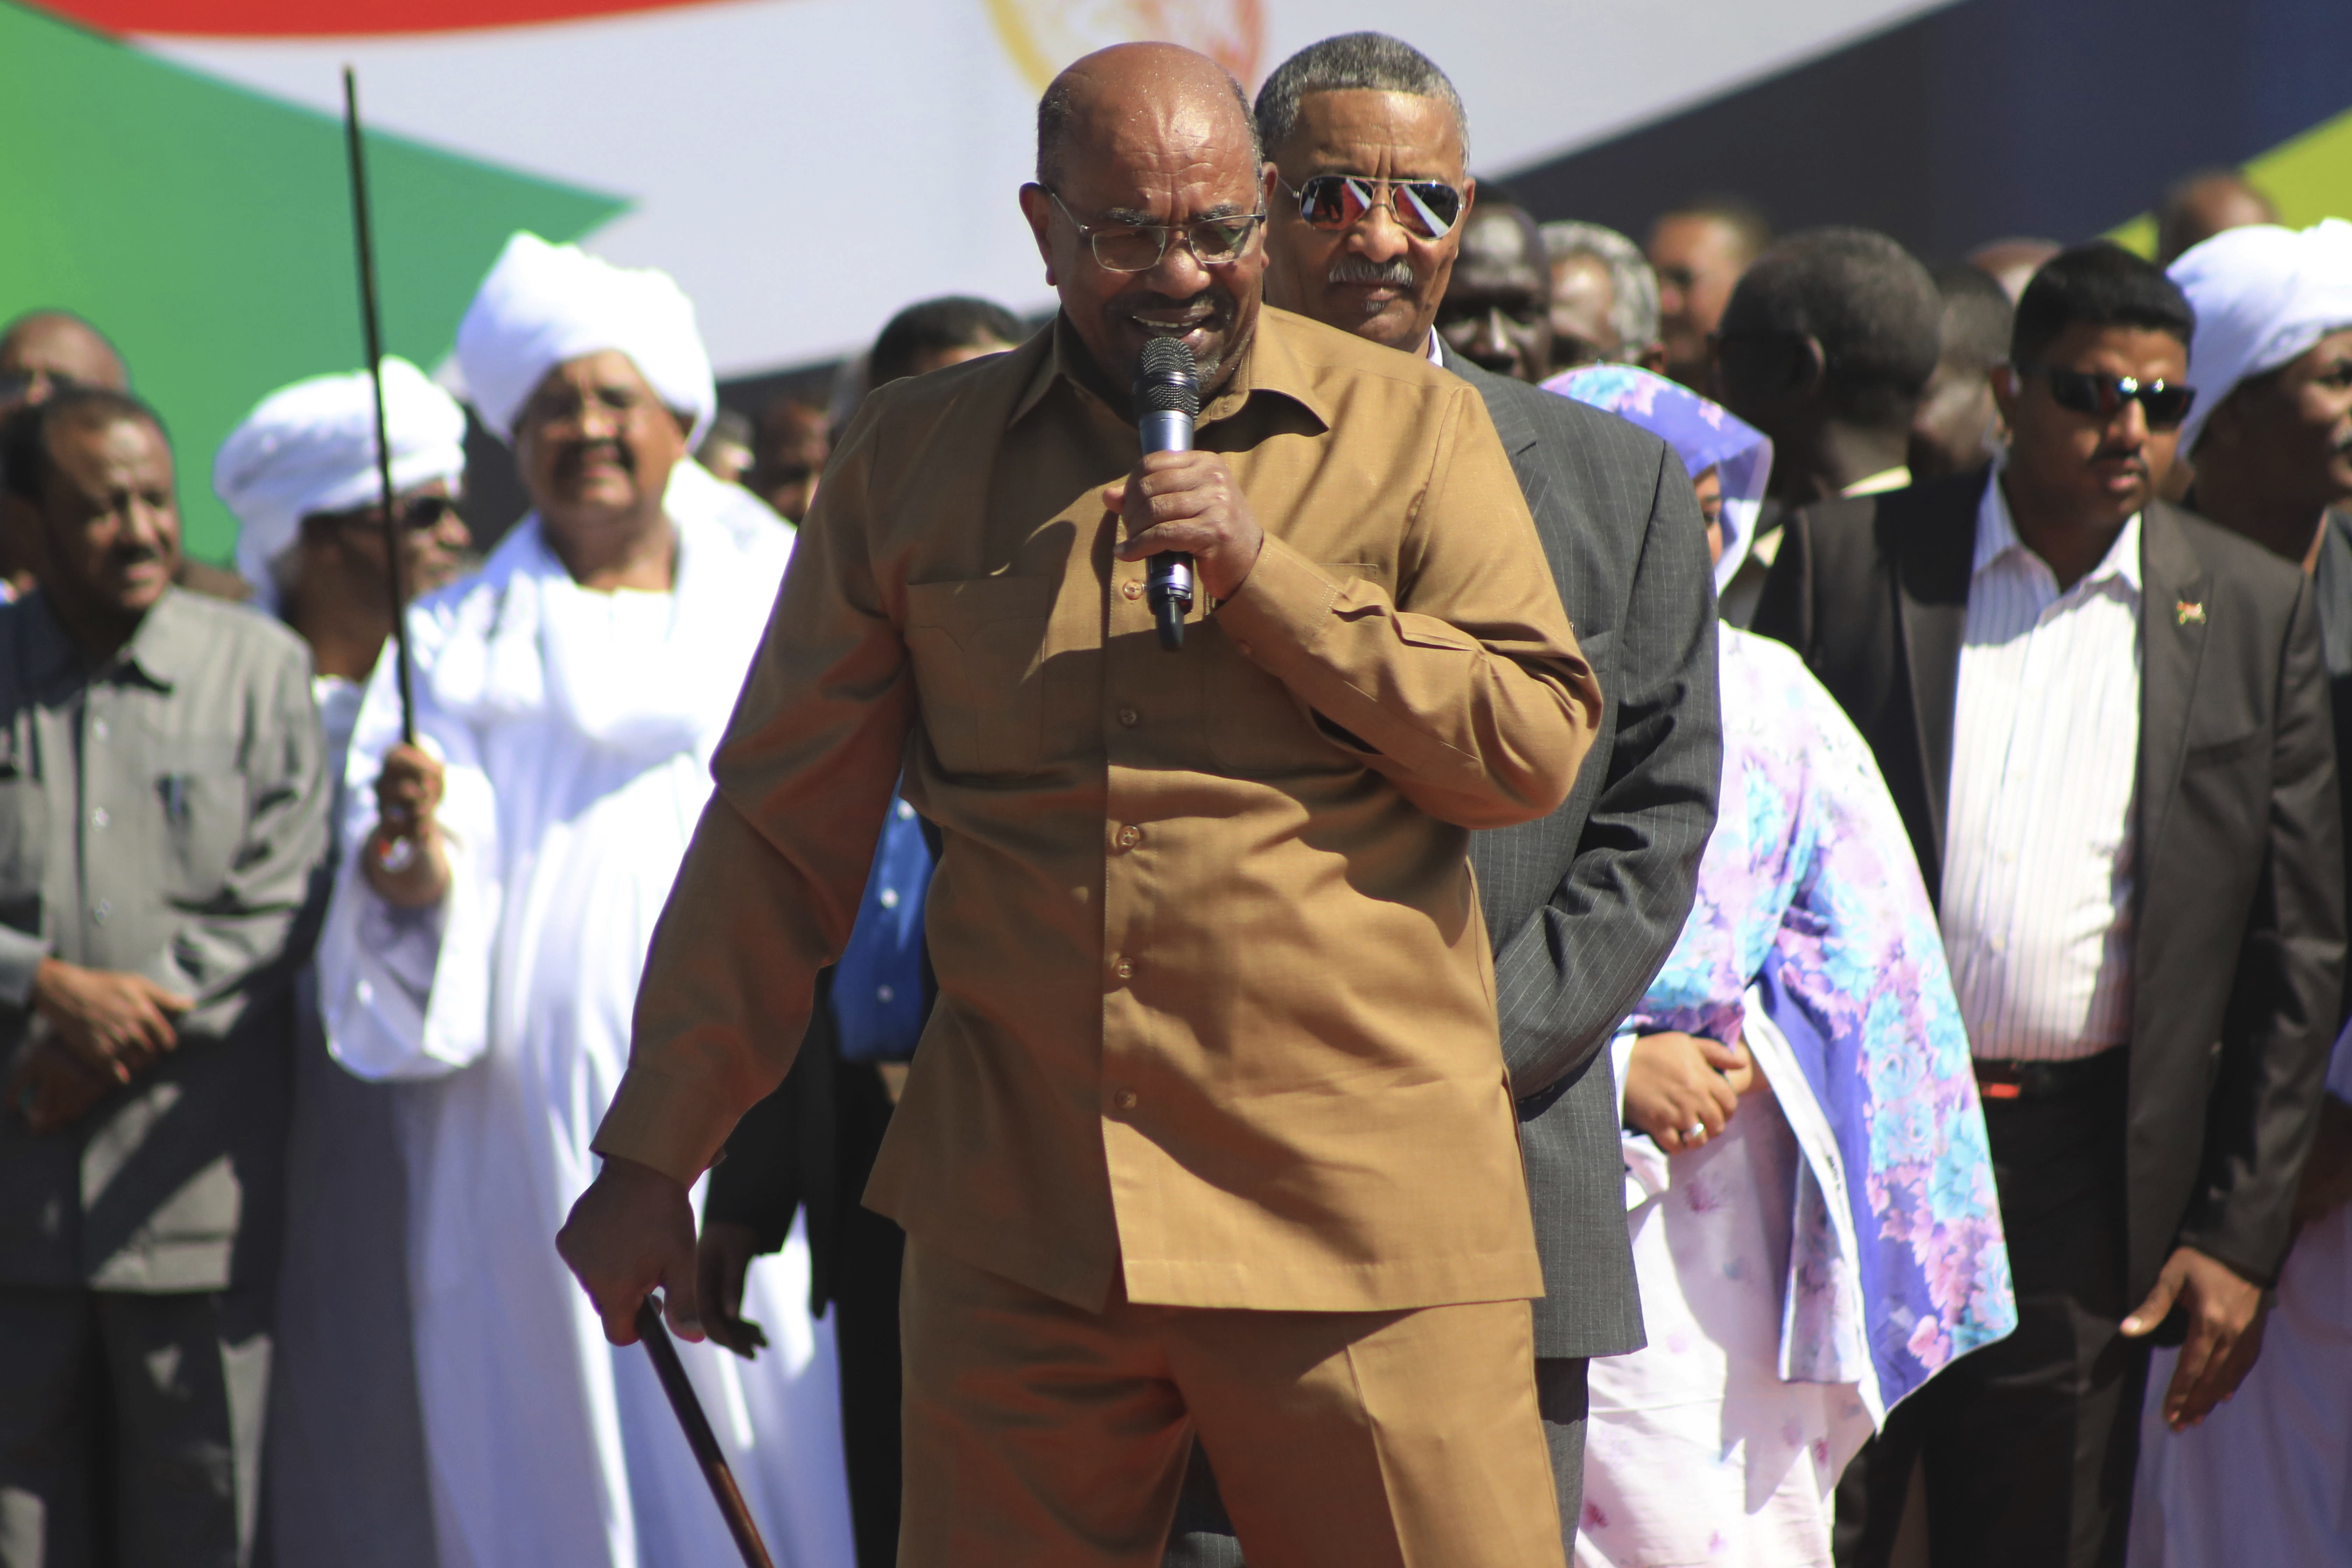 """Sudan's President Omar al-Bashir addresses supporters at a rally in Khartoum, Sudan, Wednesday, Jan. 9, 2019. Al-Bashir told the gathering of several thousands of supporters in the capital that he is ready to step down only """"through election."""" The remarks come after three weeks of anti-government protests. (AP Photo/Mahmoud Hjaj)"""